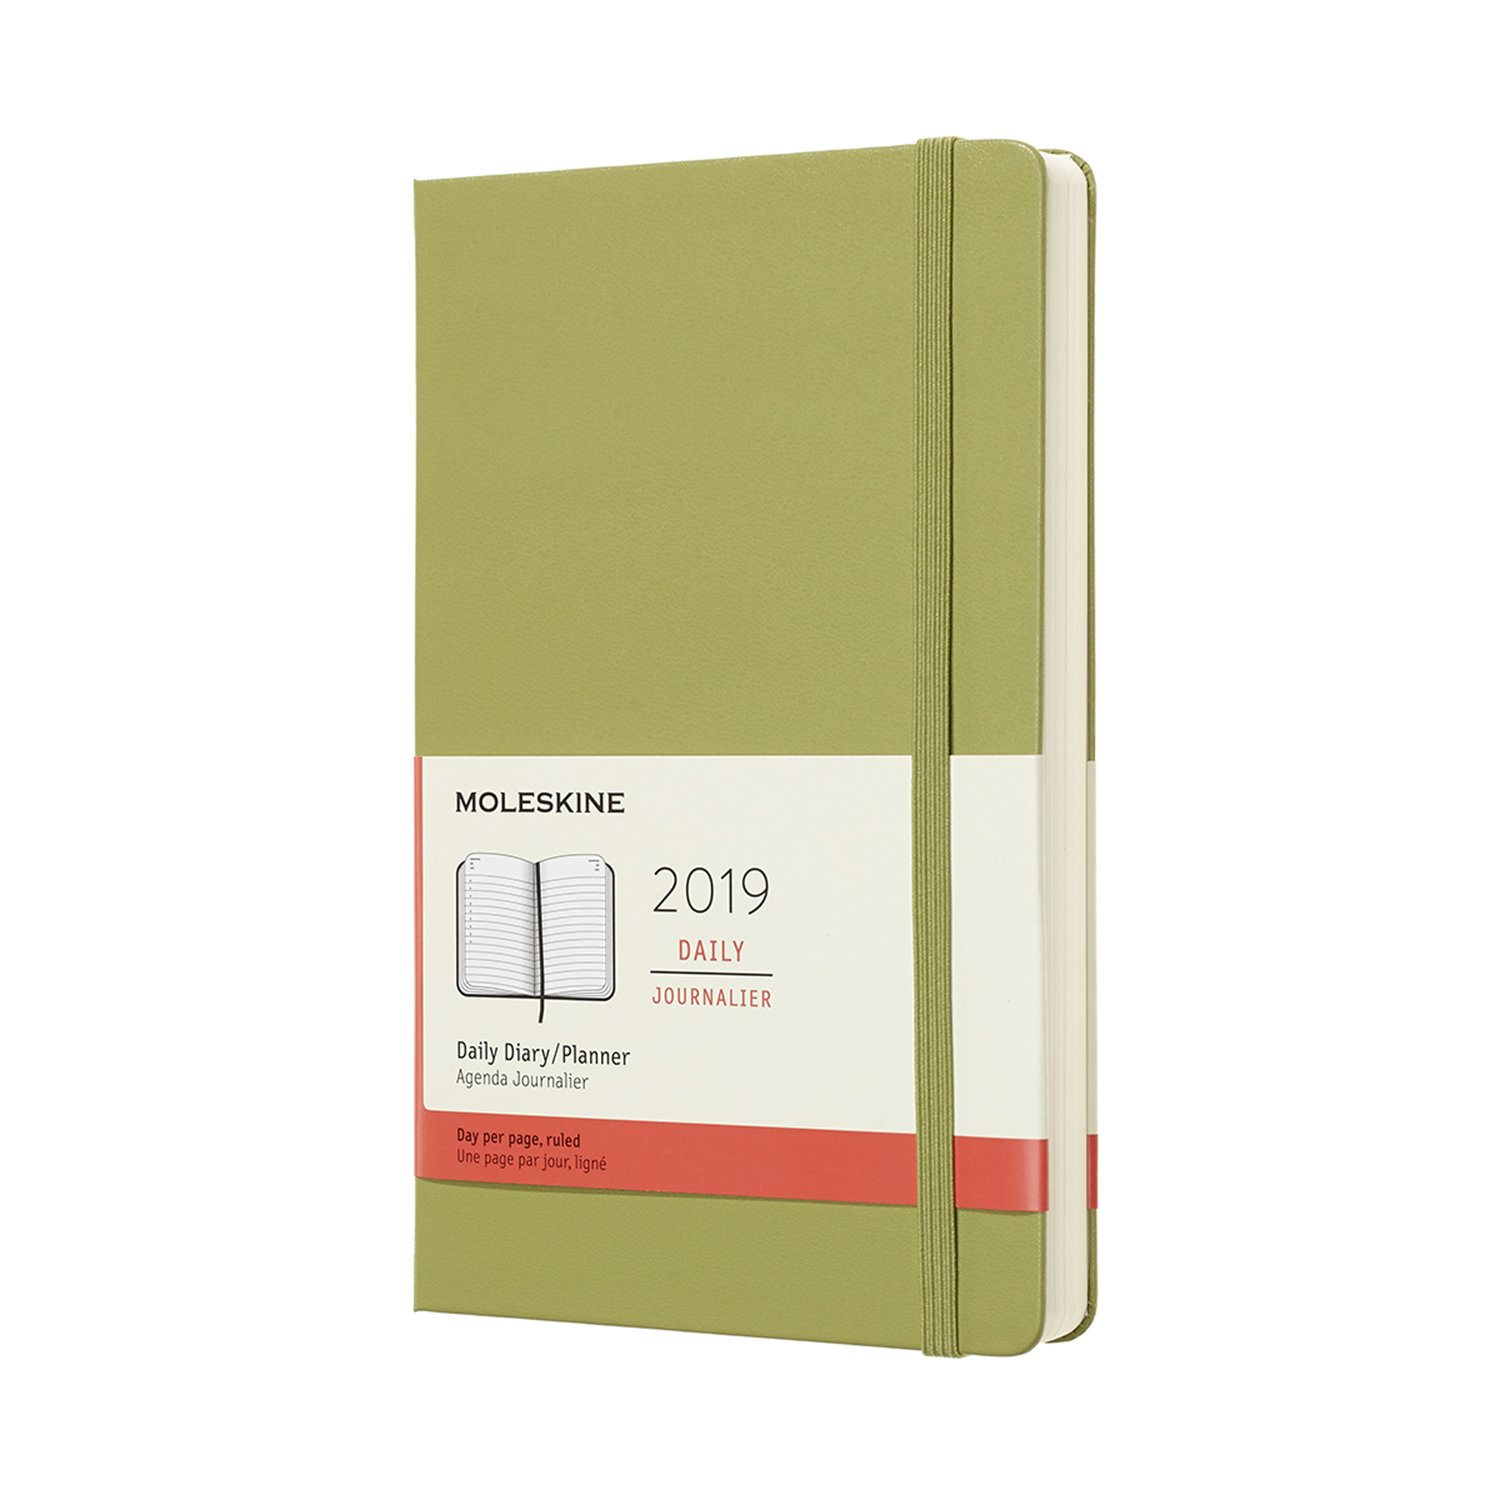 Moleskine Classic 12 Month 2019 Daily Planner Hard Cover Pocket Cinder Blue 3.5 x 5.5